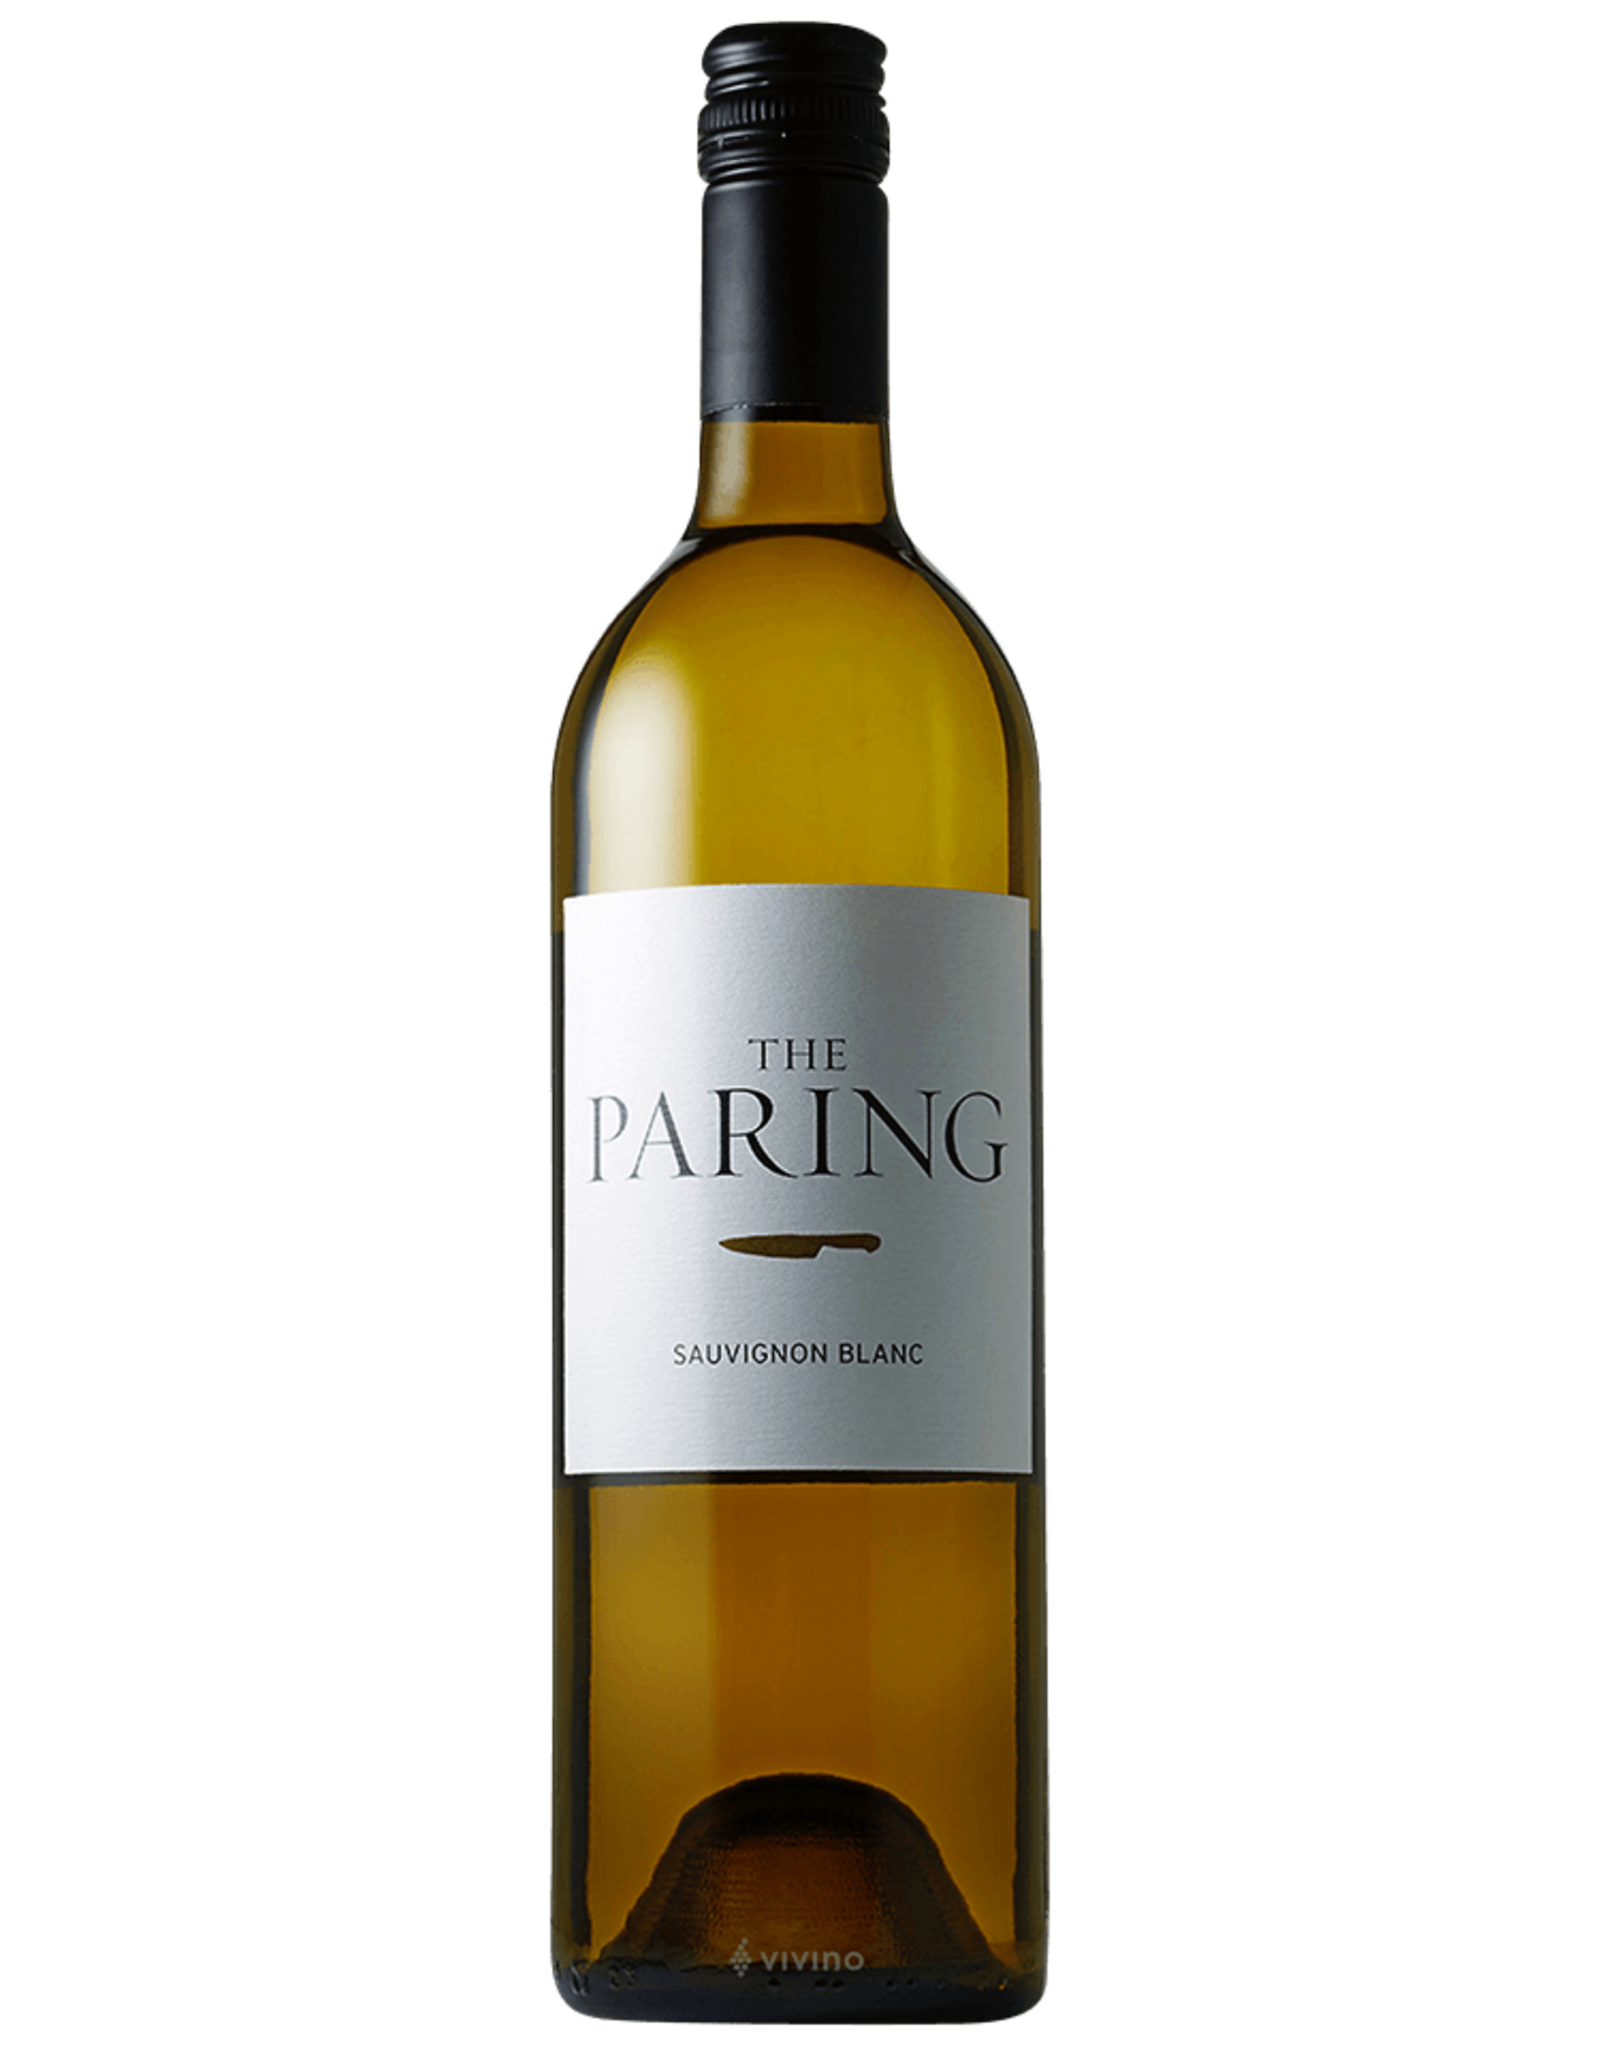 The Paring Sauvignon Blanc 2016